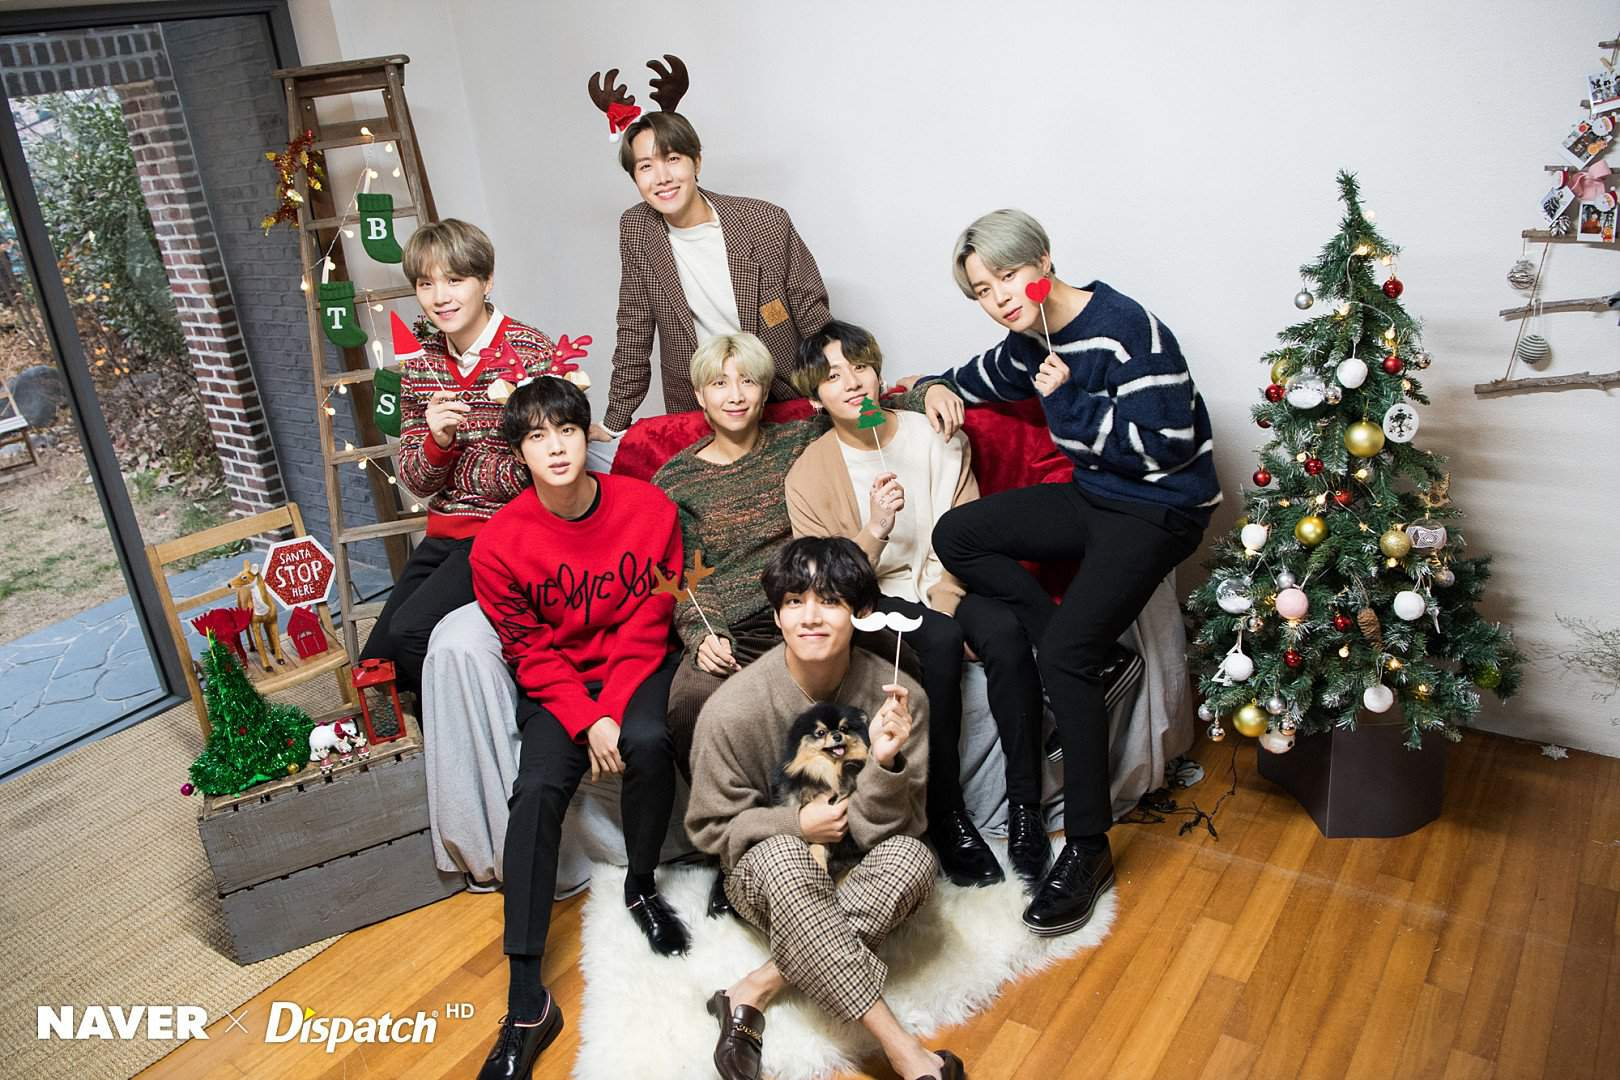 NAVER DISPATCH RELEASES ALL NEW BTS PHOTOS & VIDEOS FOR CHRISTMAS   BTS  Amino